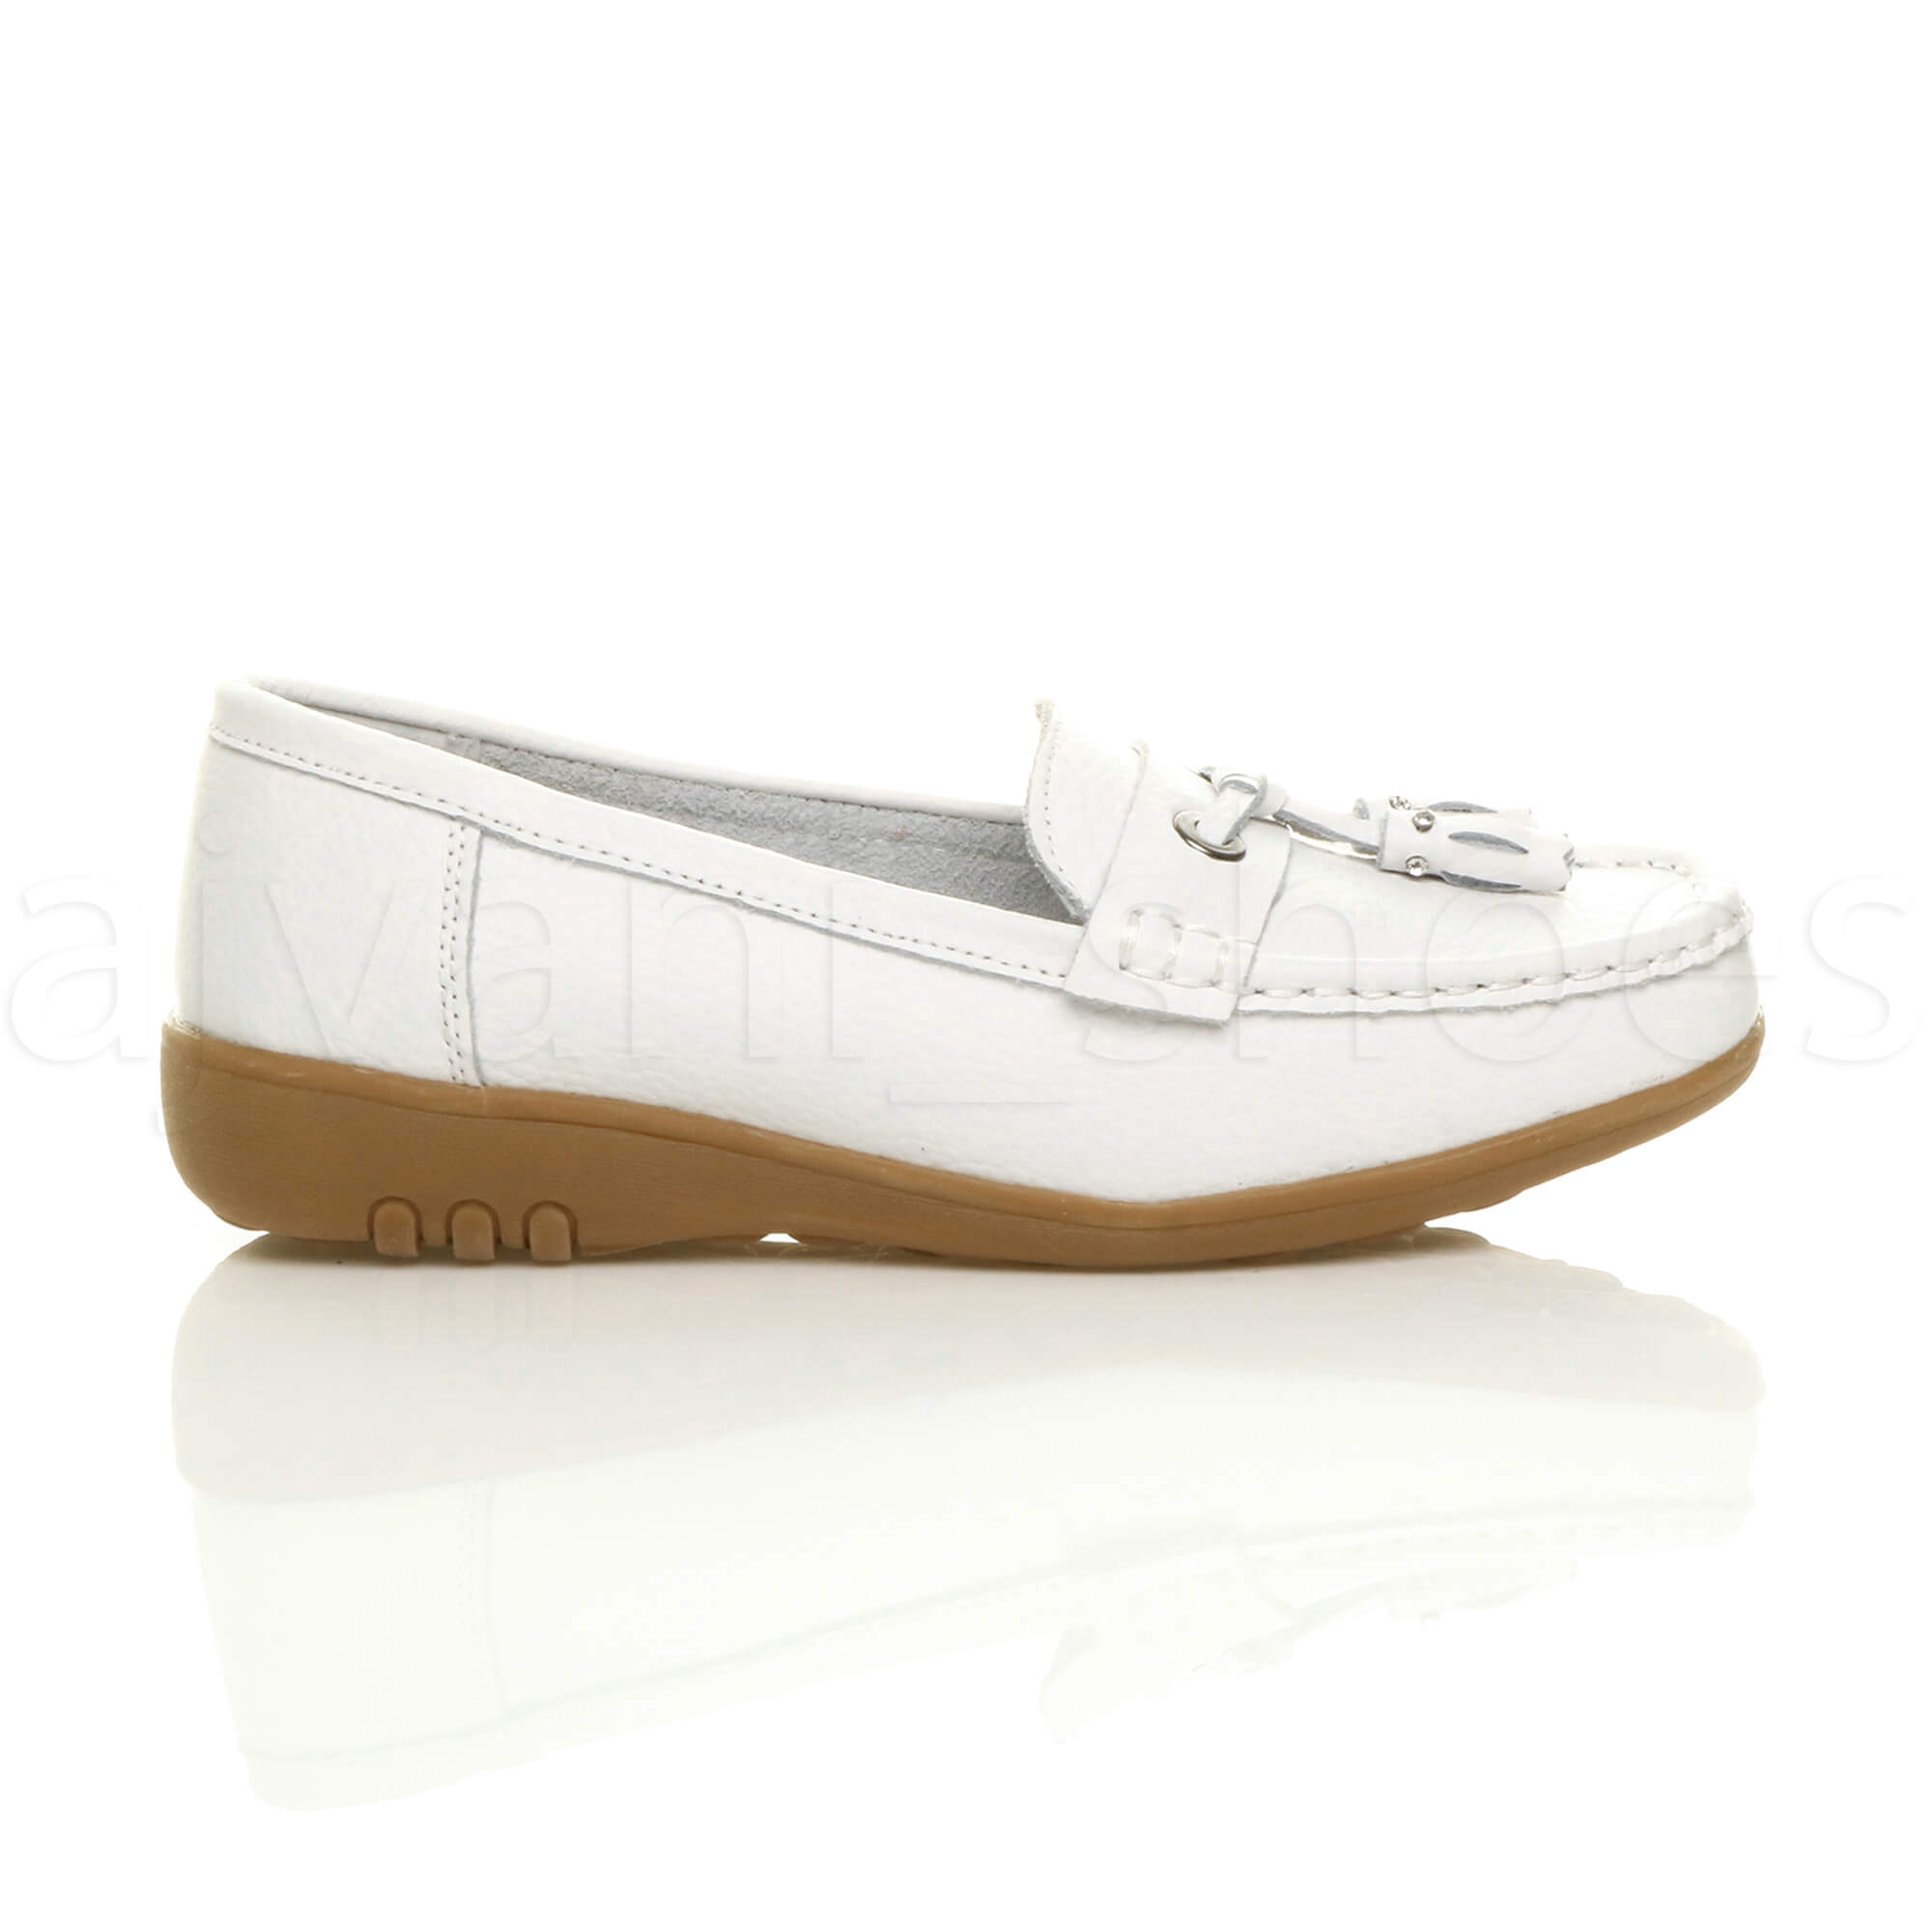 WOMENS-LADIES-LOW-HEEL-WEDGE-LEATHER-TASSEL-LOAFERS-COMFORT-MOCCASINS-SHOES-SIZE thumbnail 43